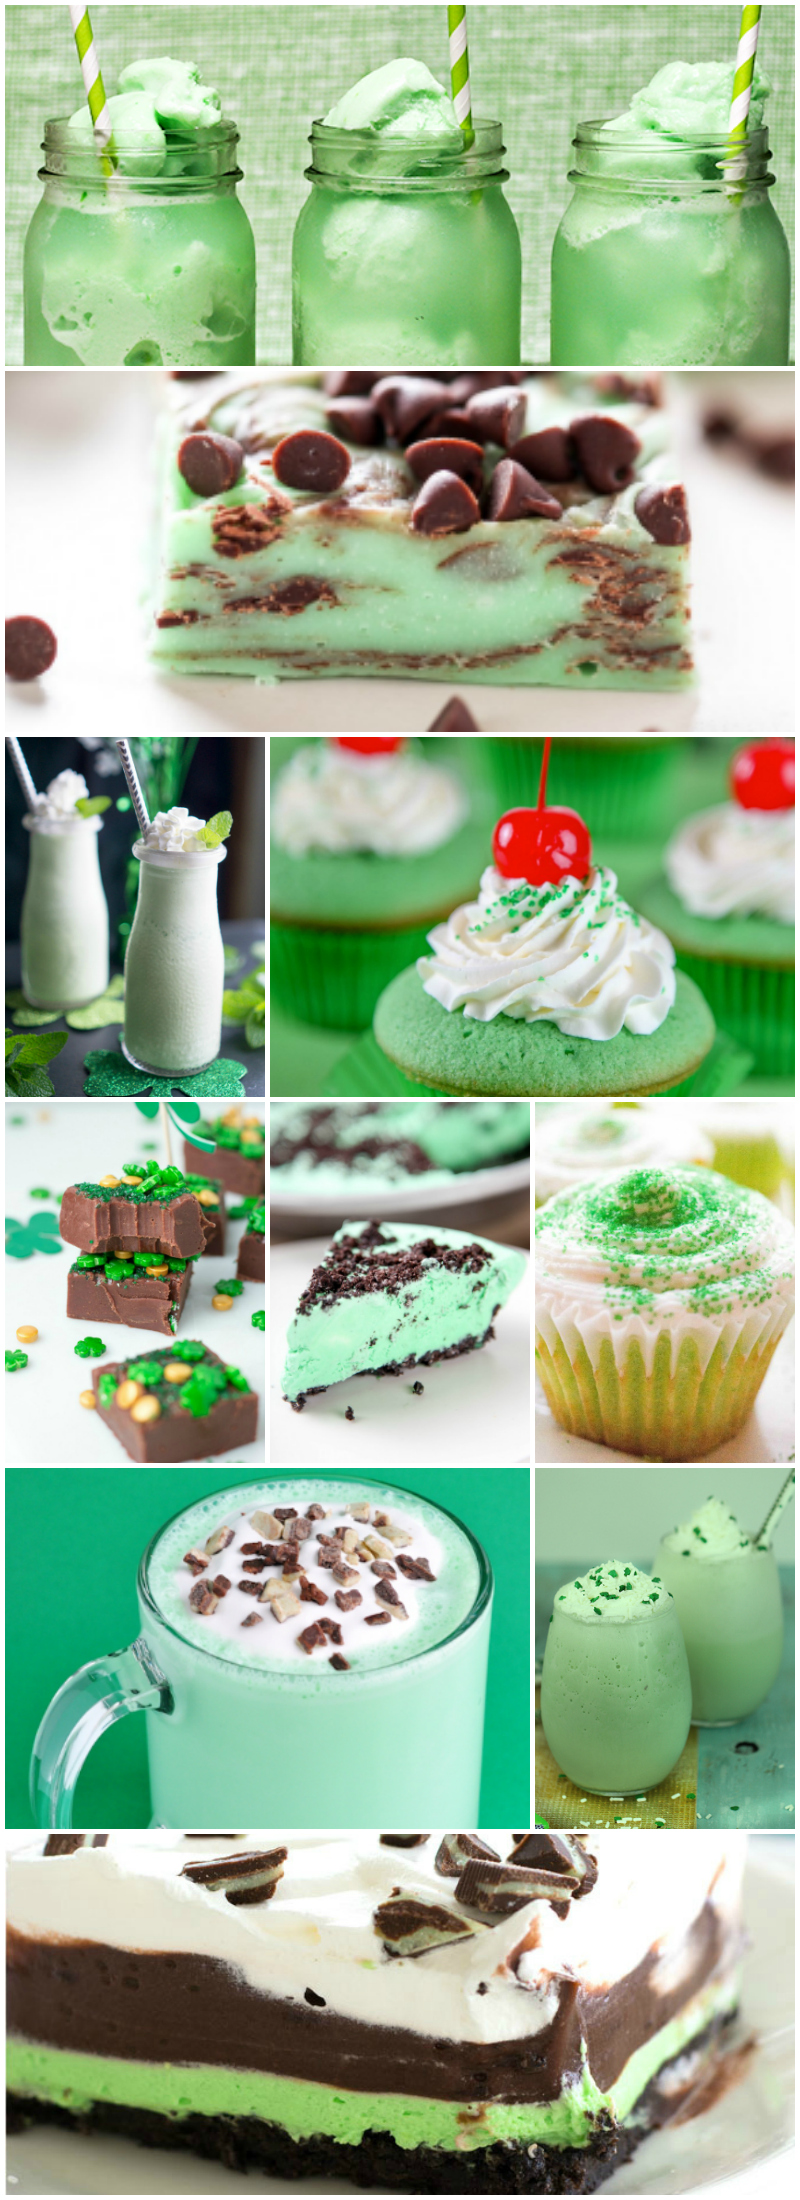 21 Fun Green Desserts for St. Patrick's Day